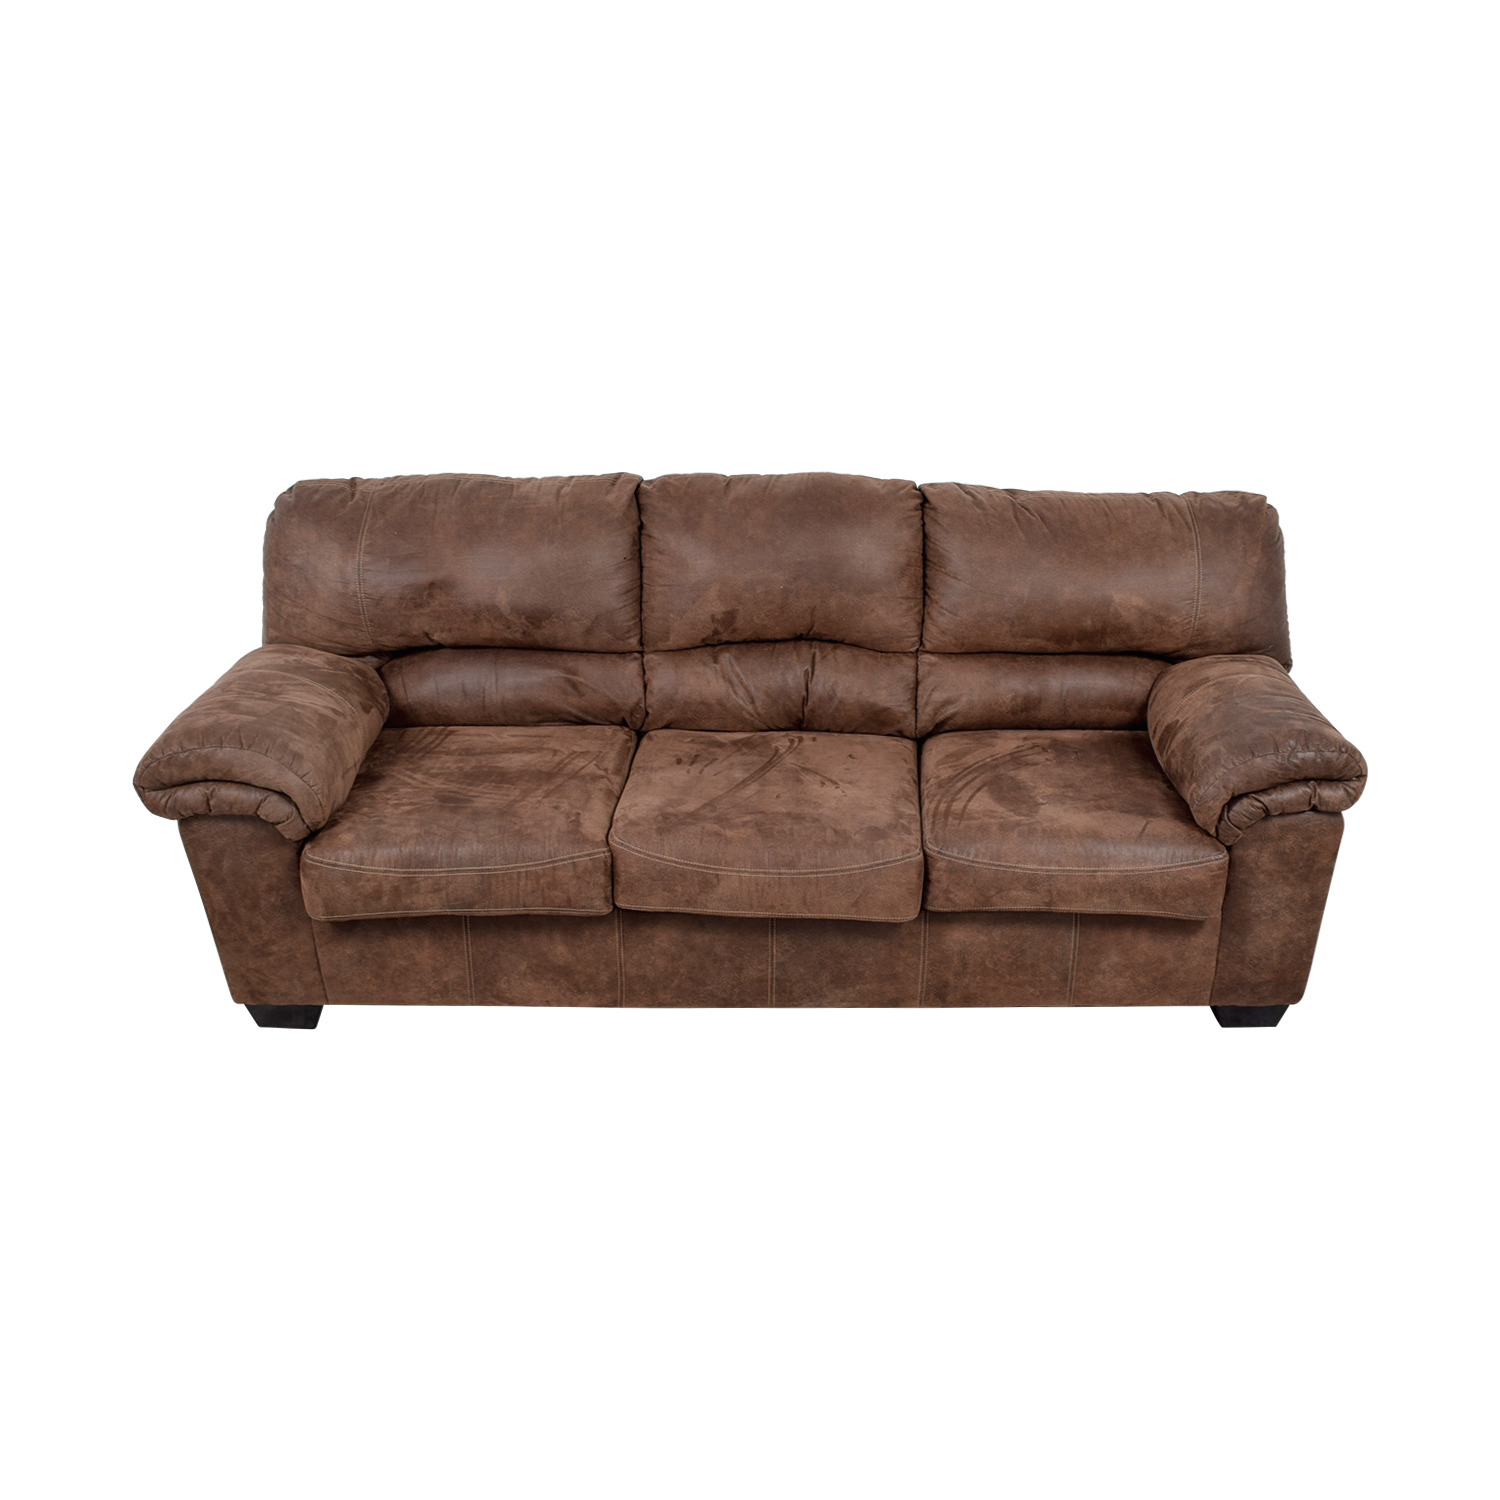 Ashley's Furniture Three-Cushion Brown Sofa discount